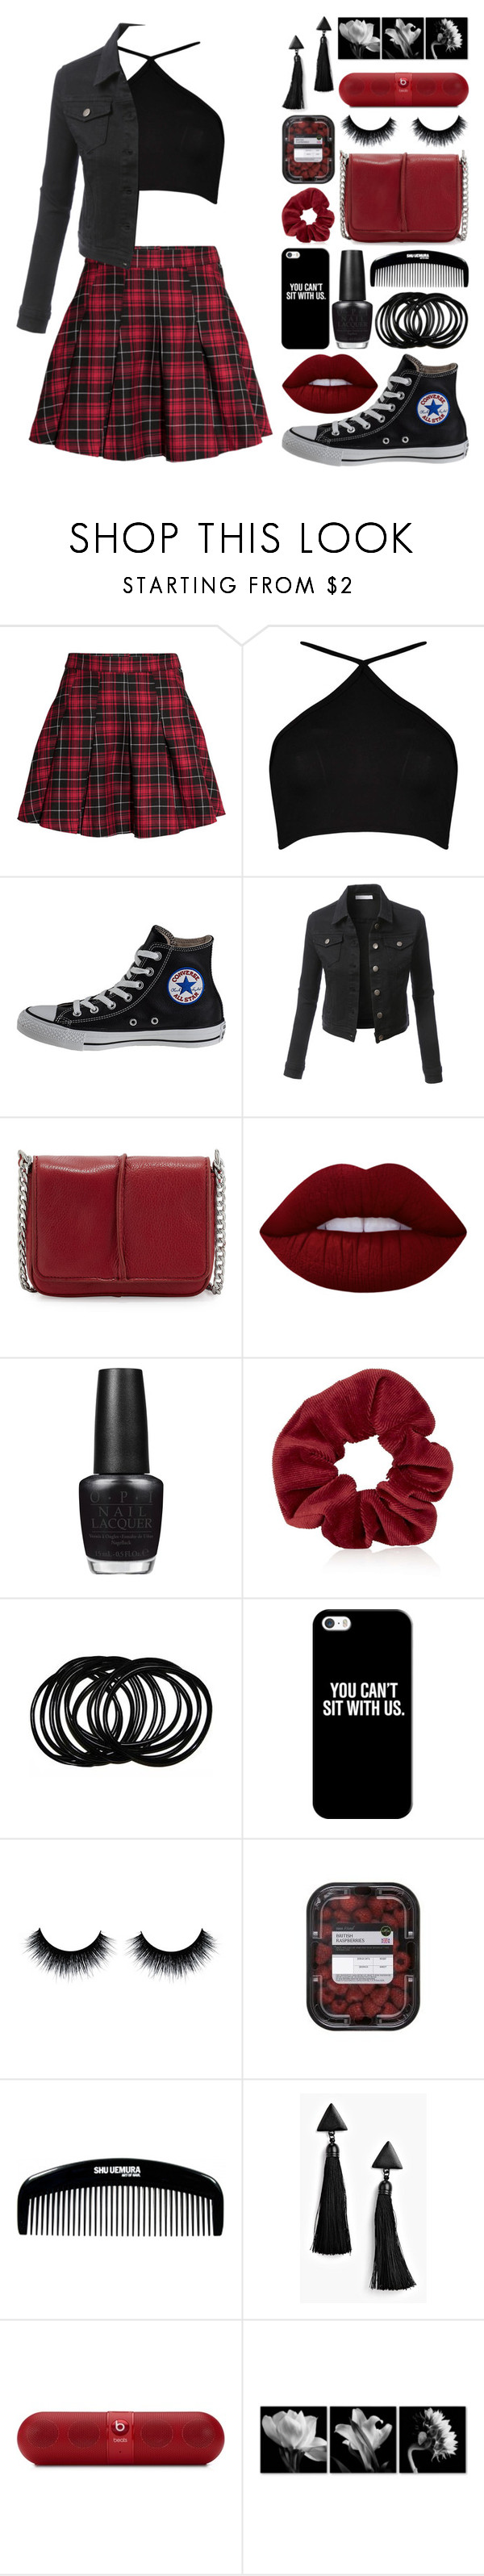 """""""You Can't Sit With Us"""" by meaganmuffins ❤ liked on Polyvore featuring H&M, Boohoo, Converse, LE3NO, Neiman Marcus, Lime Crime, OPI, Topshop, Casetify and Beats by Dr. Dre"""